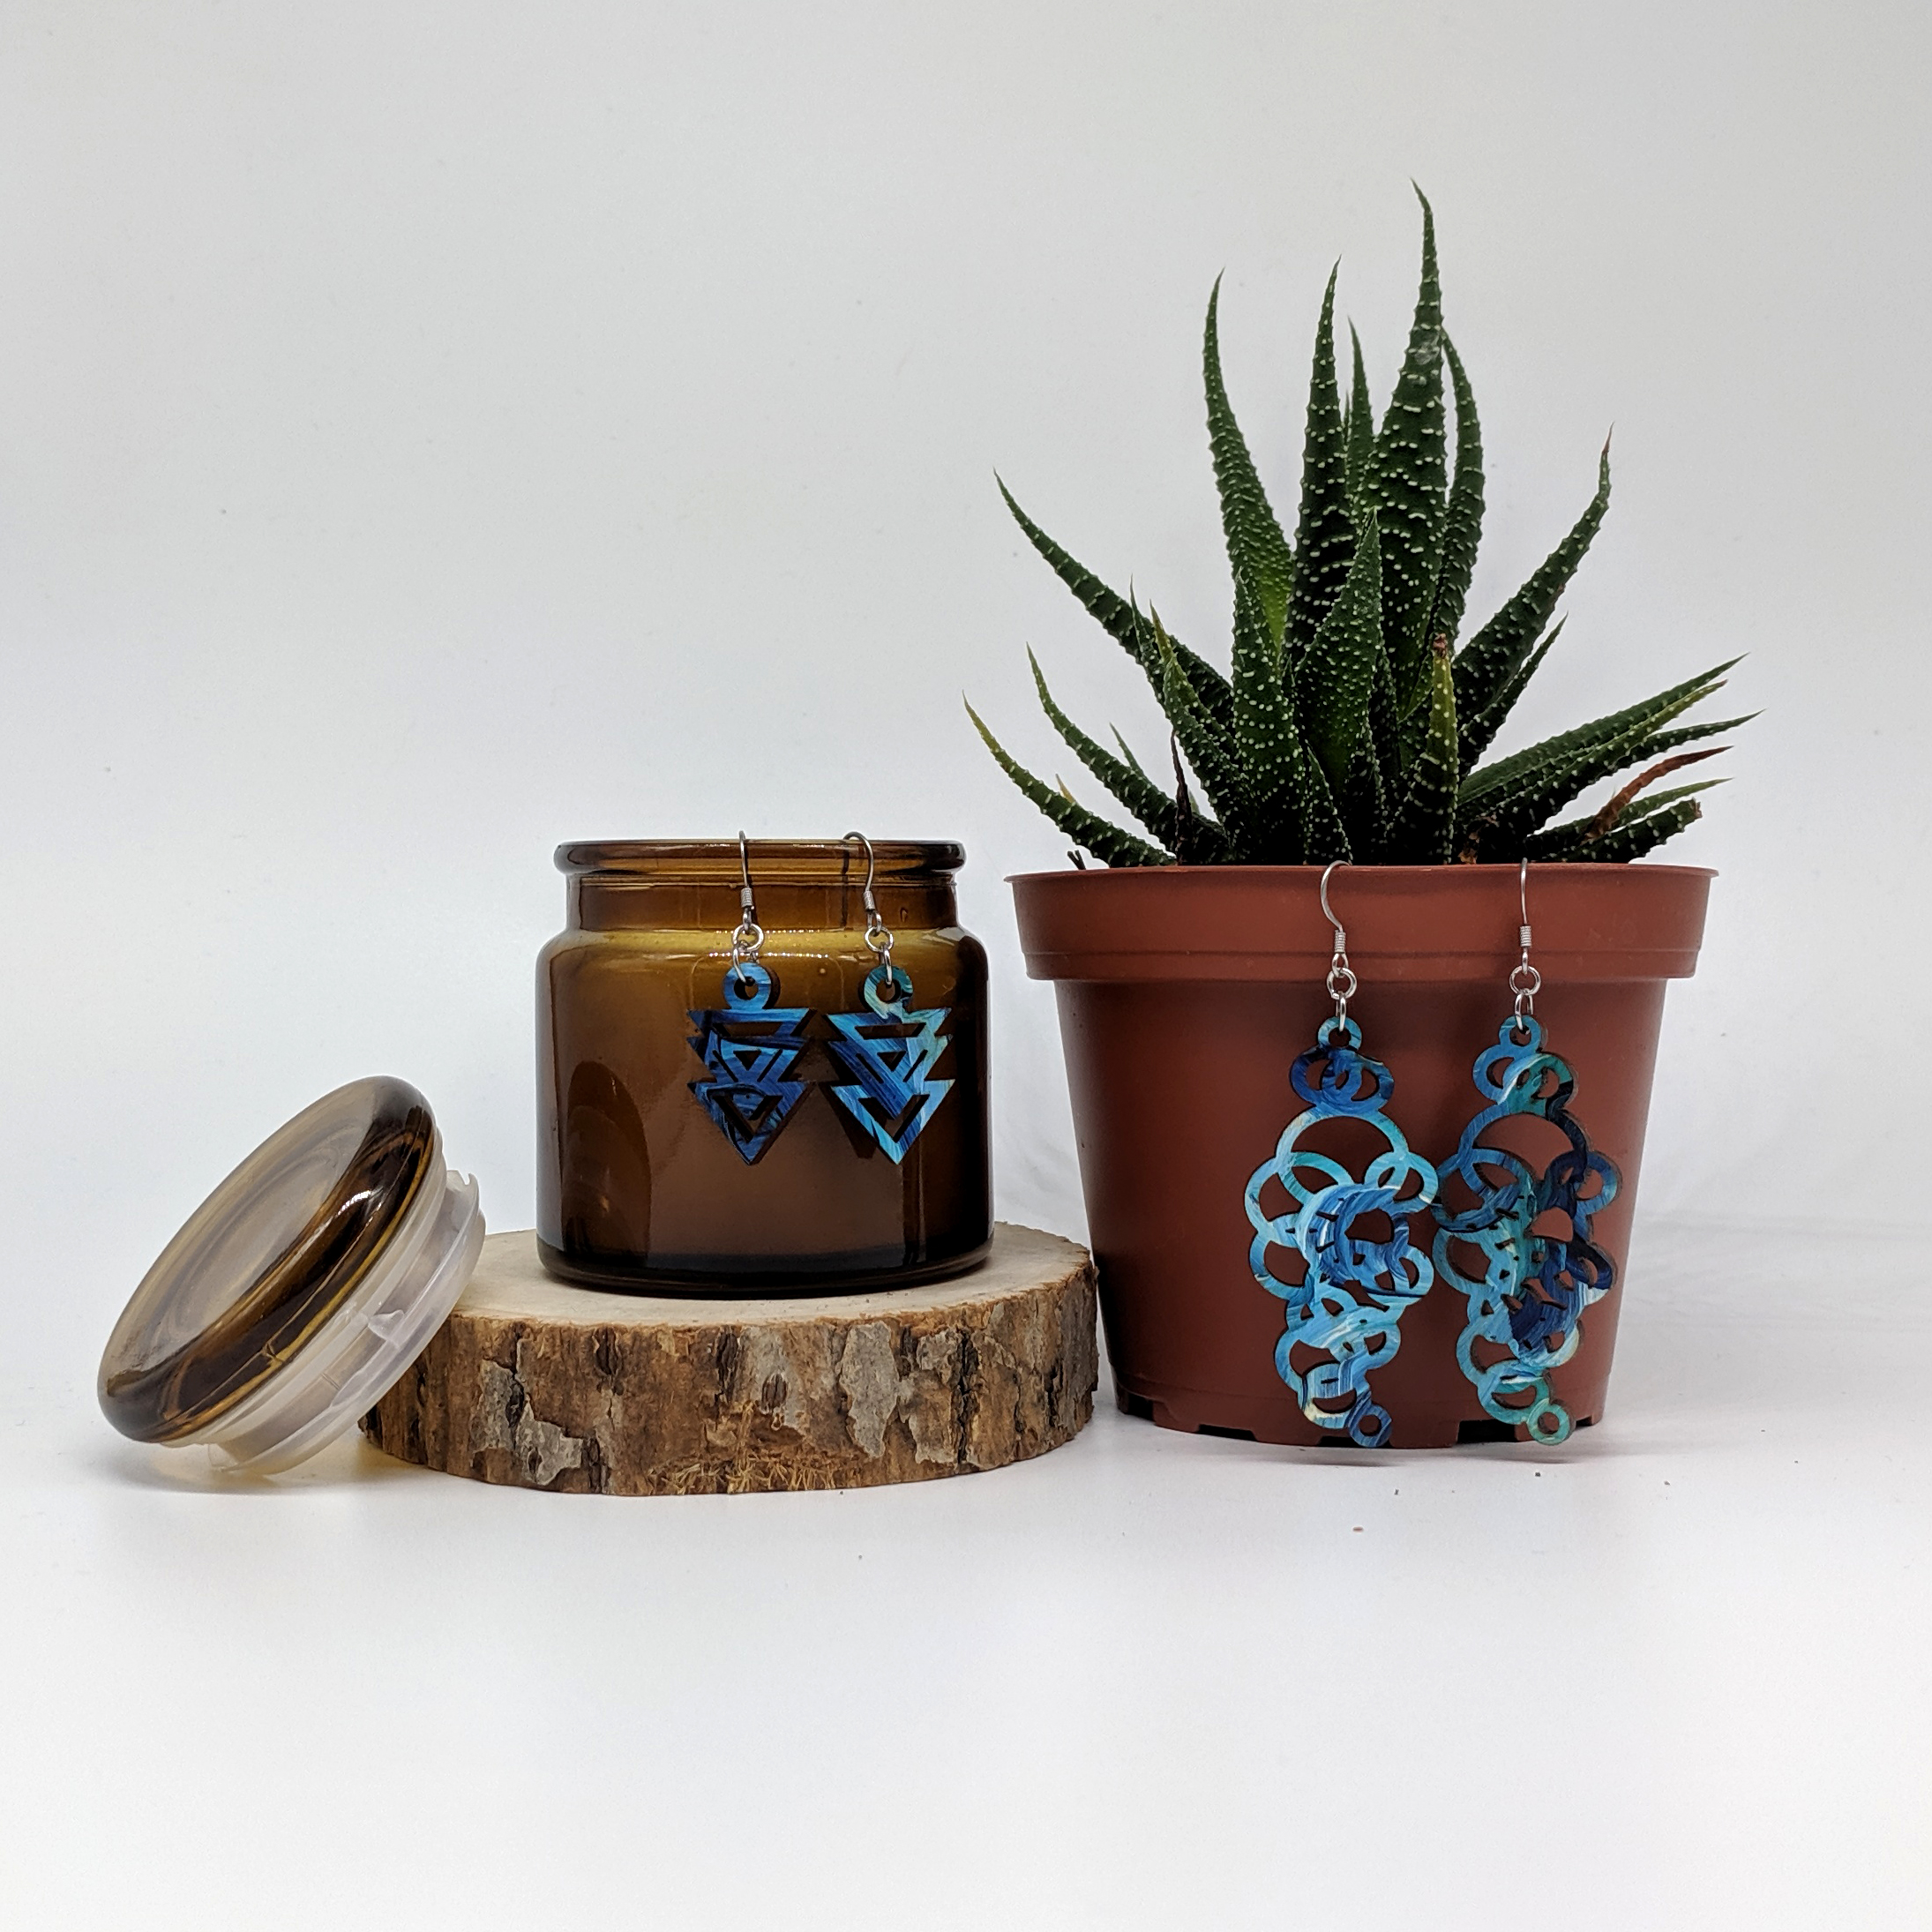 abstract earrings with succulents.jpg